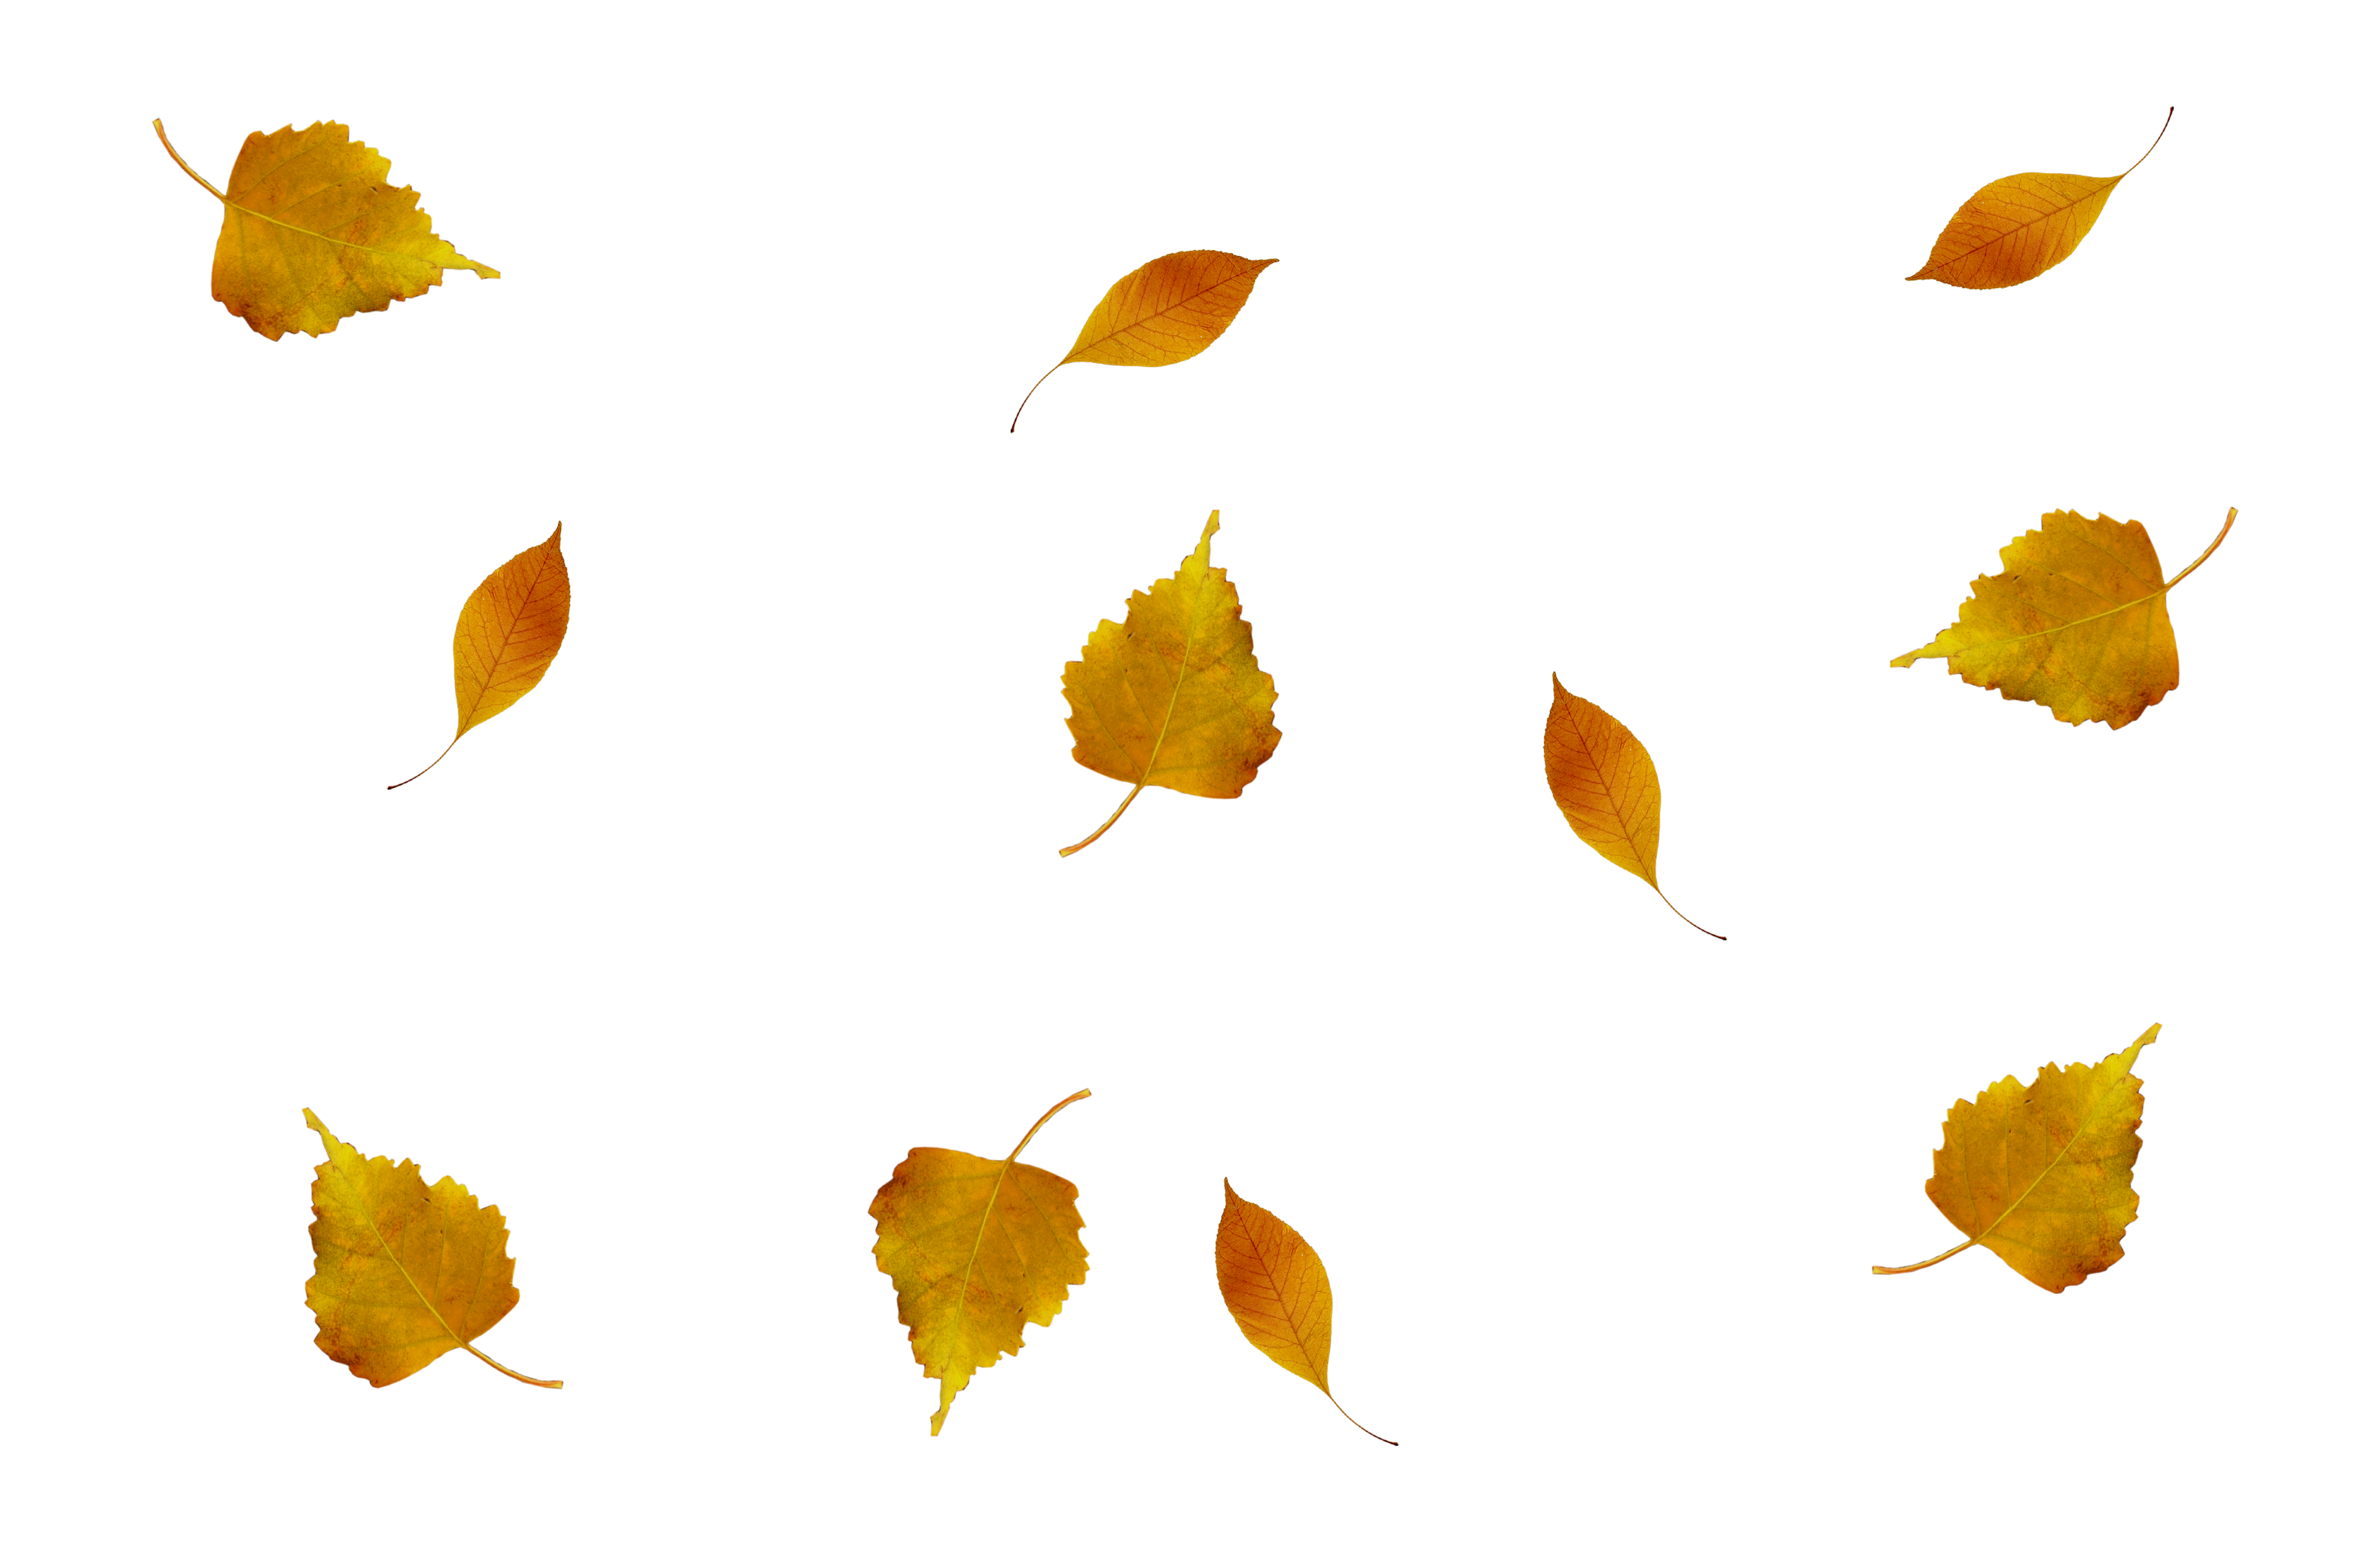 Wind and leaves png. Hojas de otono by